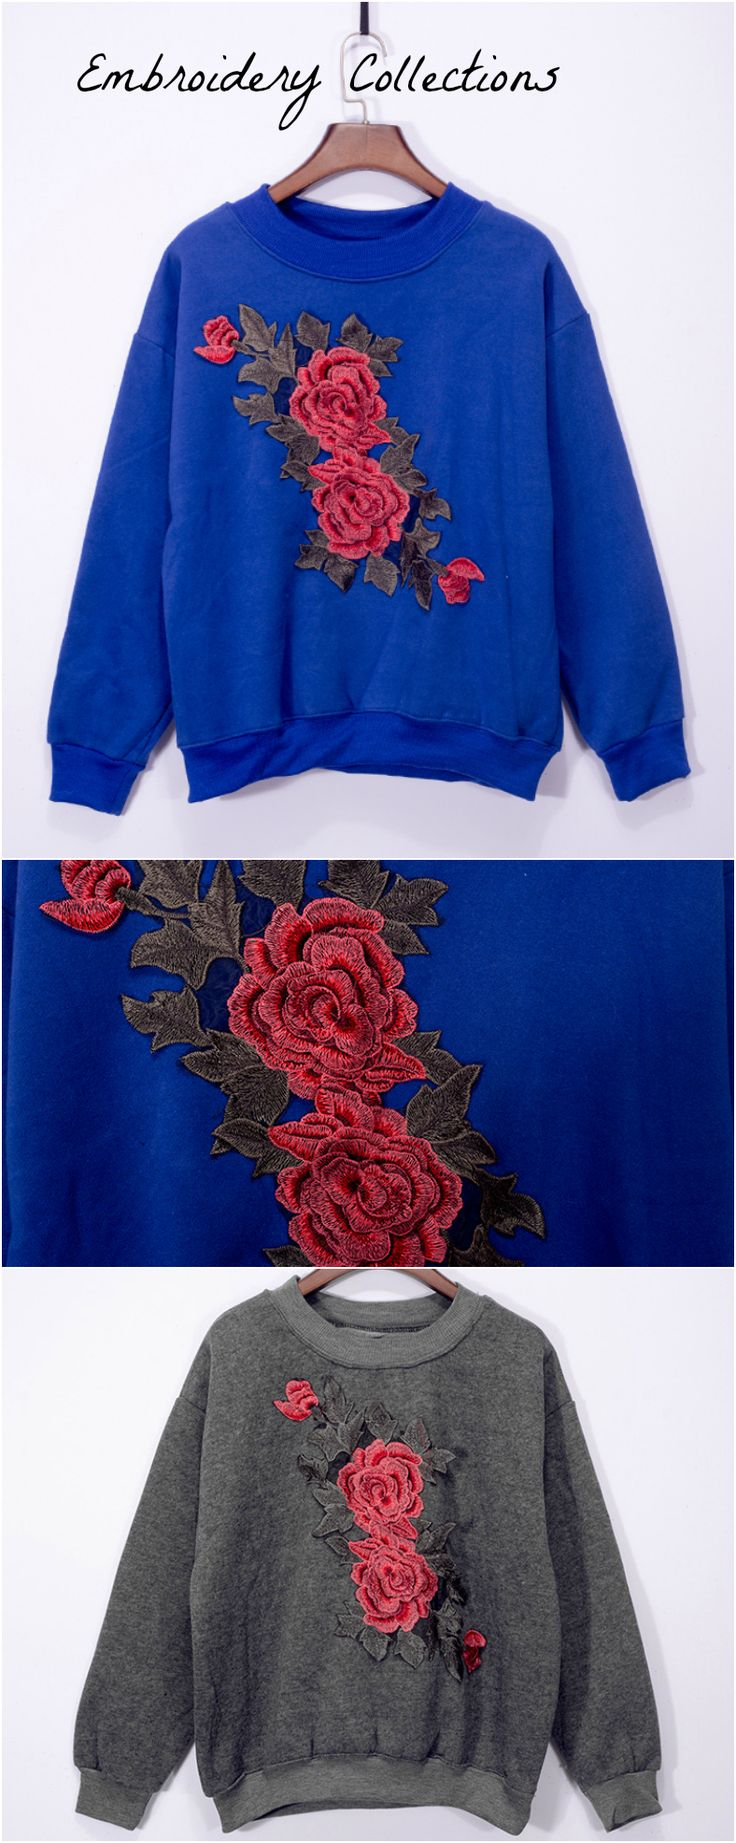 ❤️ On Sale : An Embroidery Sweater with Rose Embroidery is now available at Pasaboho. This pullover exhibit unique embroidered floral patterns. ❤️ Street Style :: Autumn Sweater :: Embroidery Pullover :: boho chic :: Rose Embroidery :: Gray :: Blue :: Outfit Ideas :: Fashion Trend